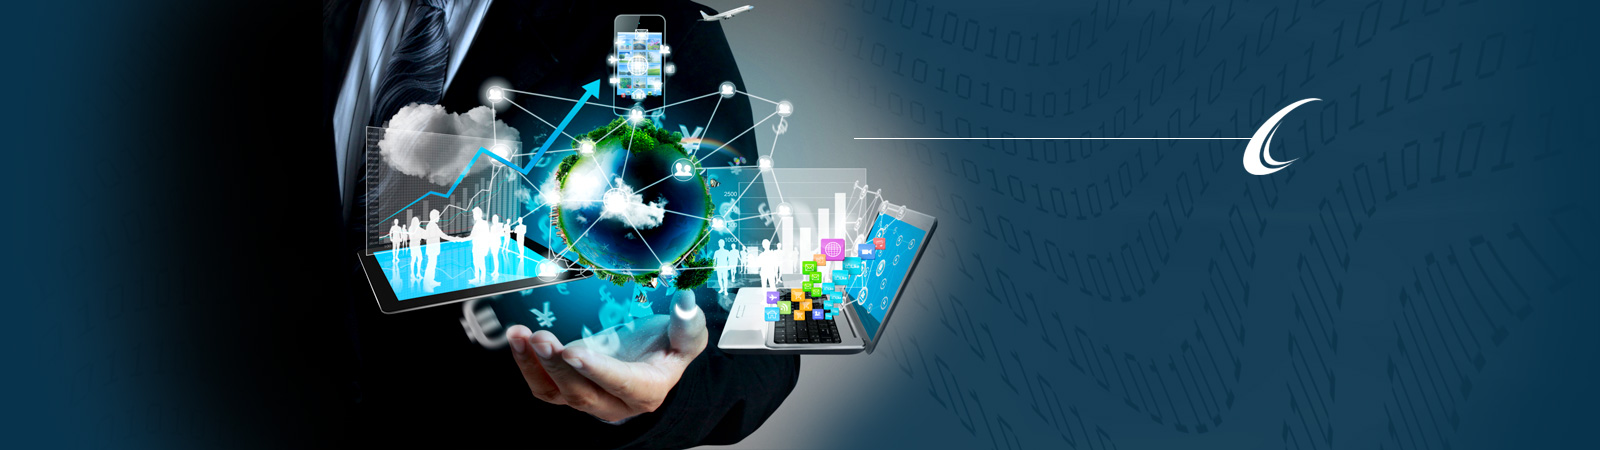 information technology in business environment Businesses have been at the forefront of technology for ages whatever can speed production will draw in more business as computers emerged in the 20th century, they promised a new age of information technology.